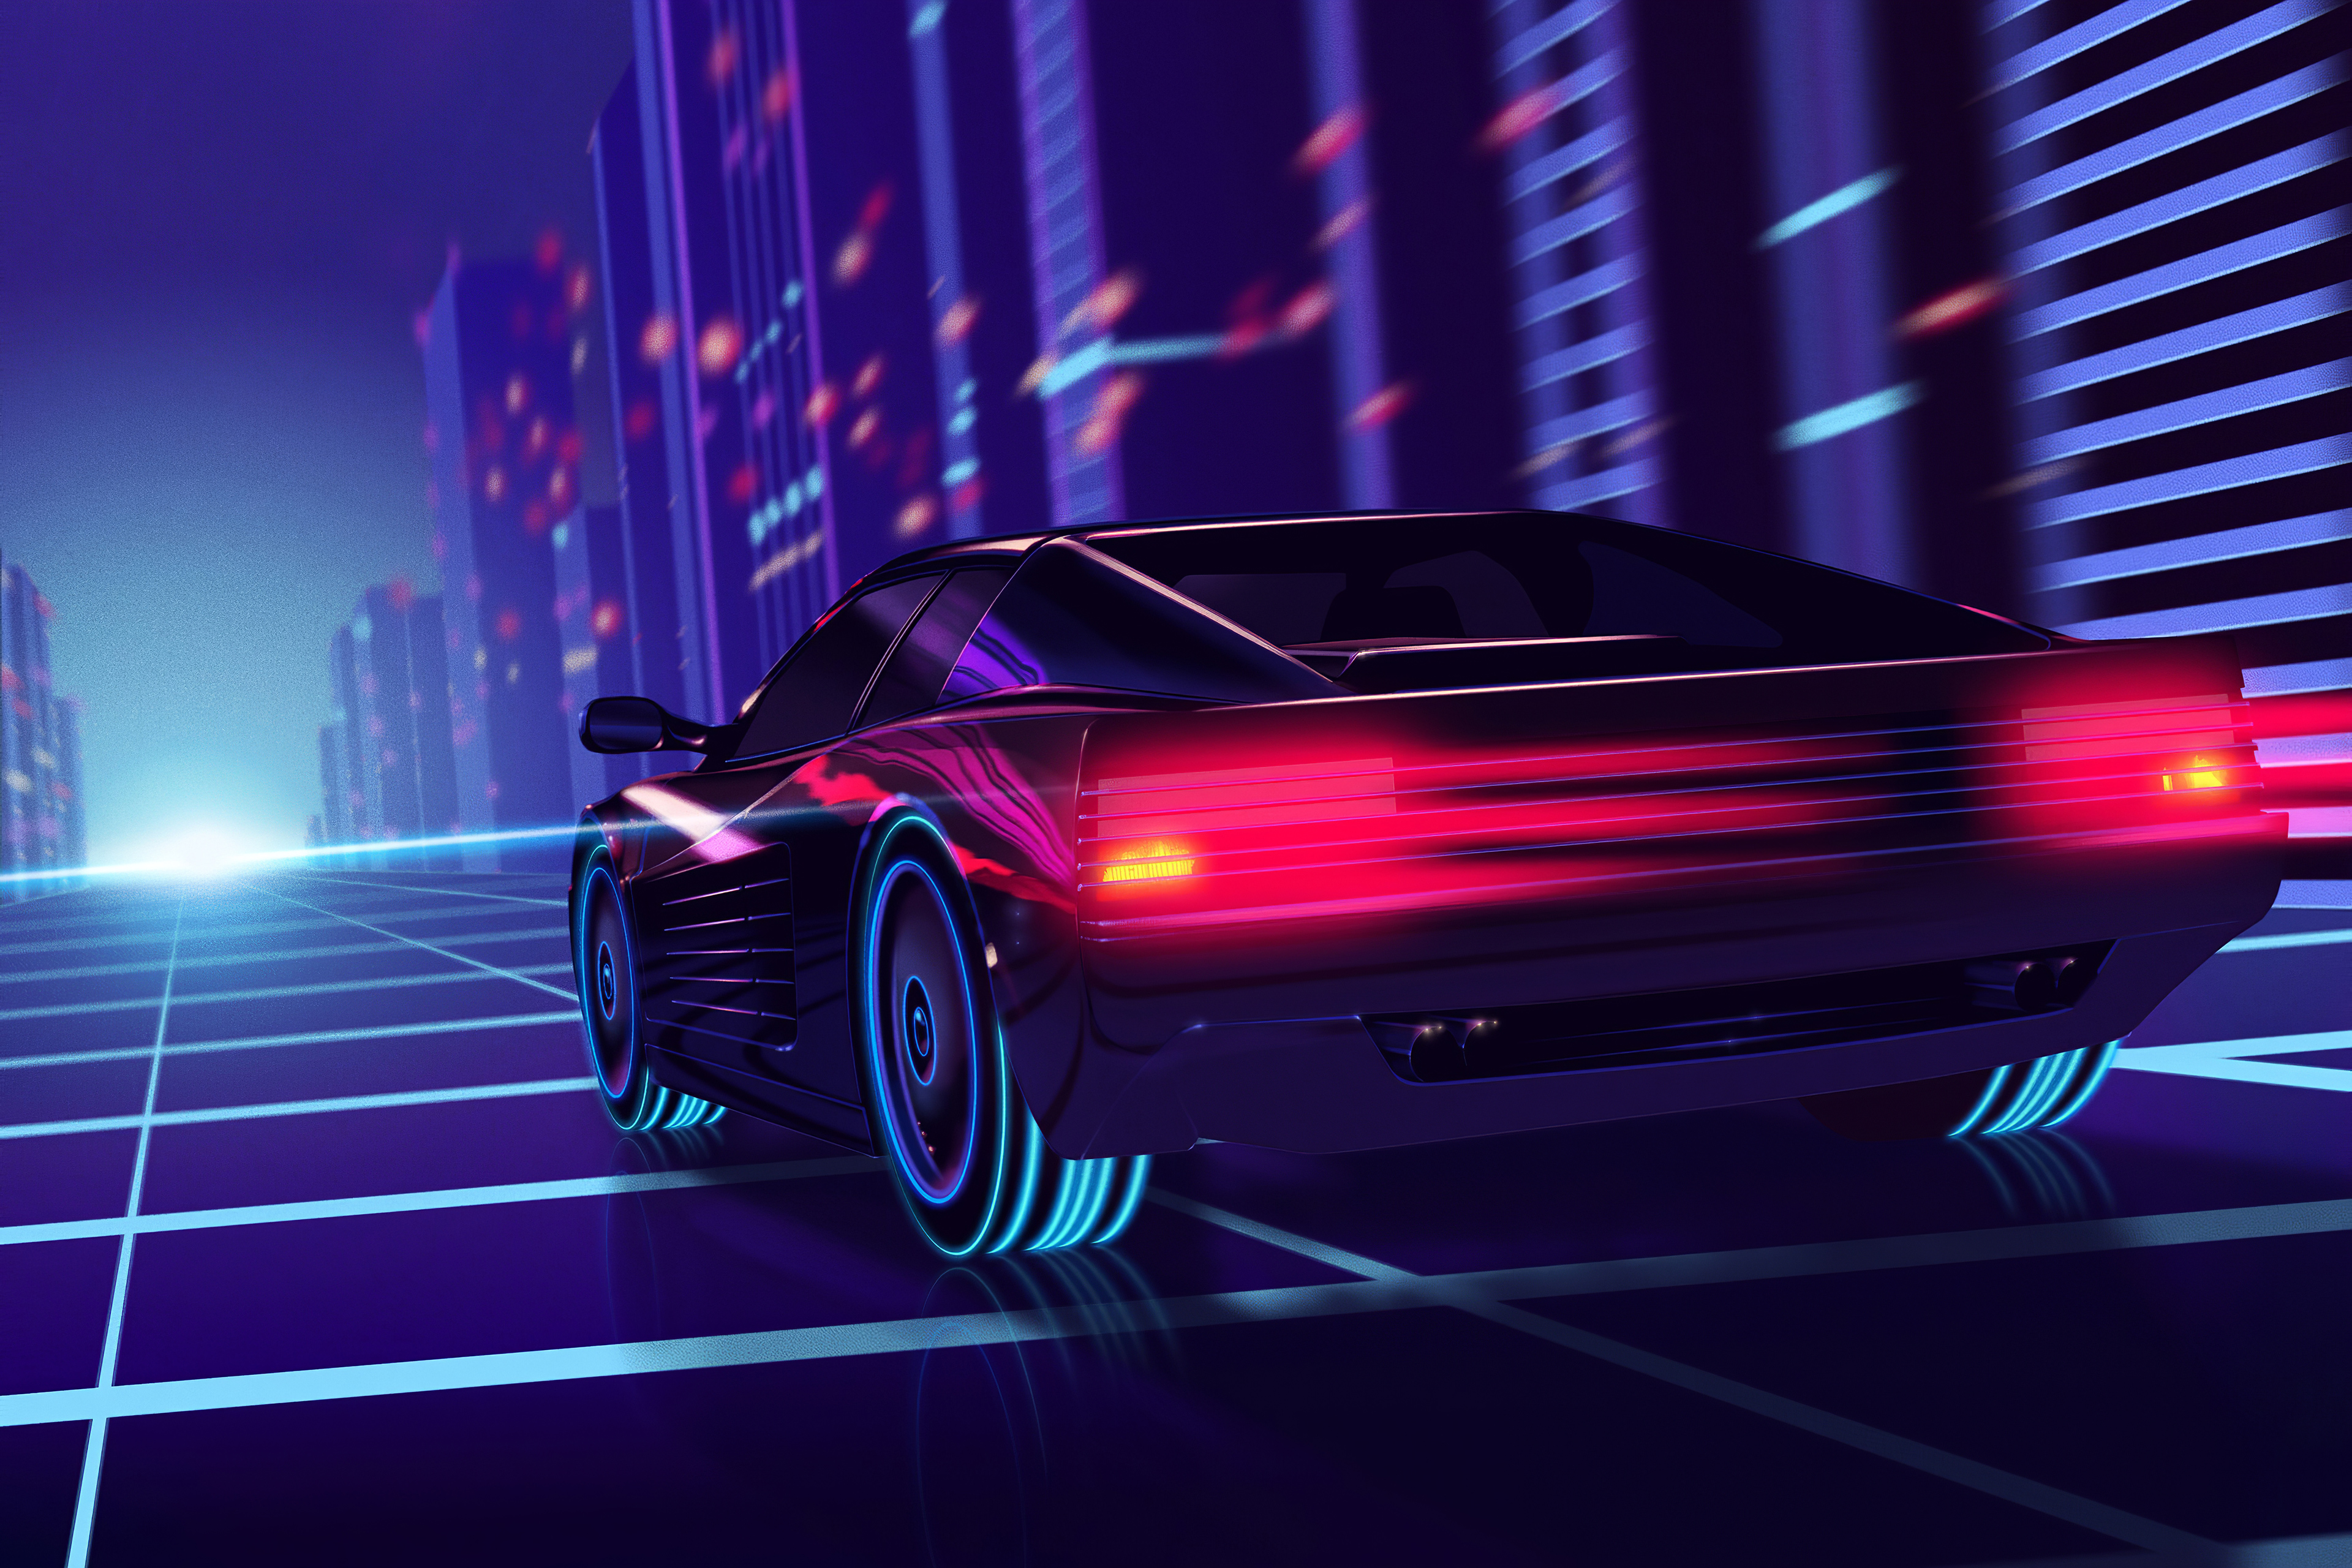 Synthwave Ferrari Testarossa 4k Hd Cars 4k Wallpapers Images Backgrounds Photos And Pictures